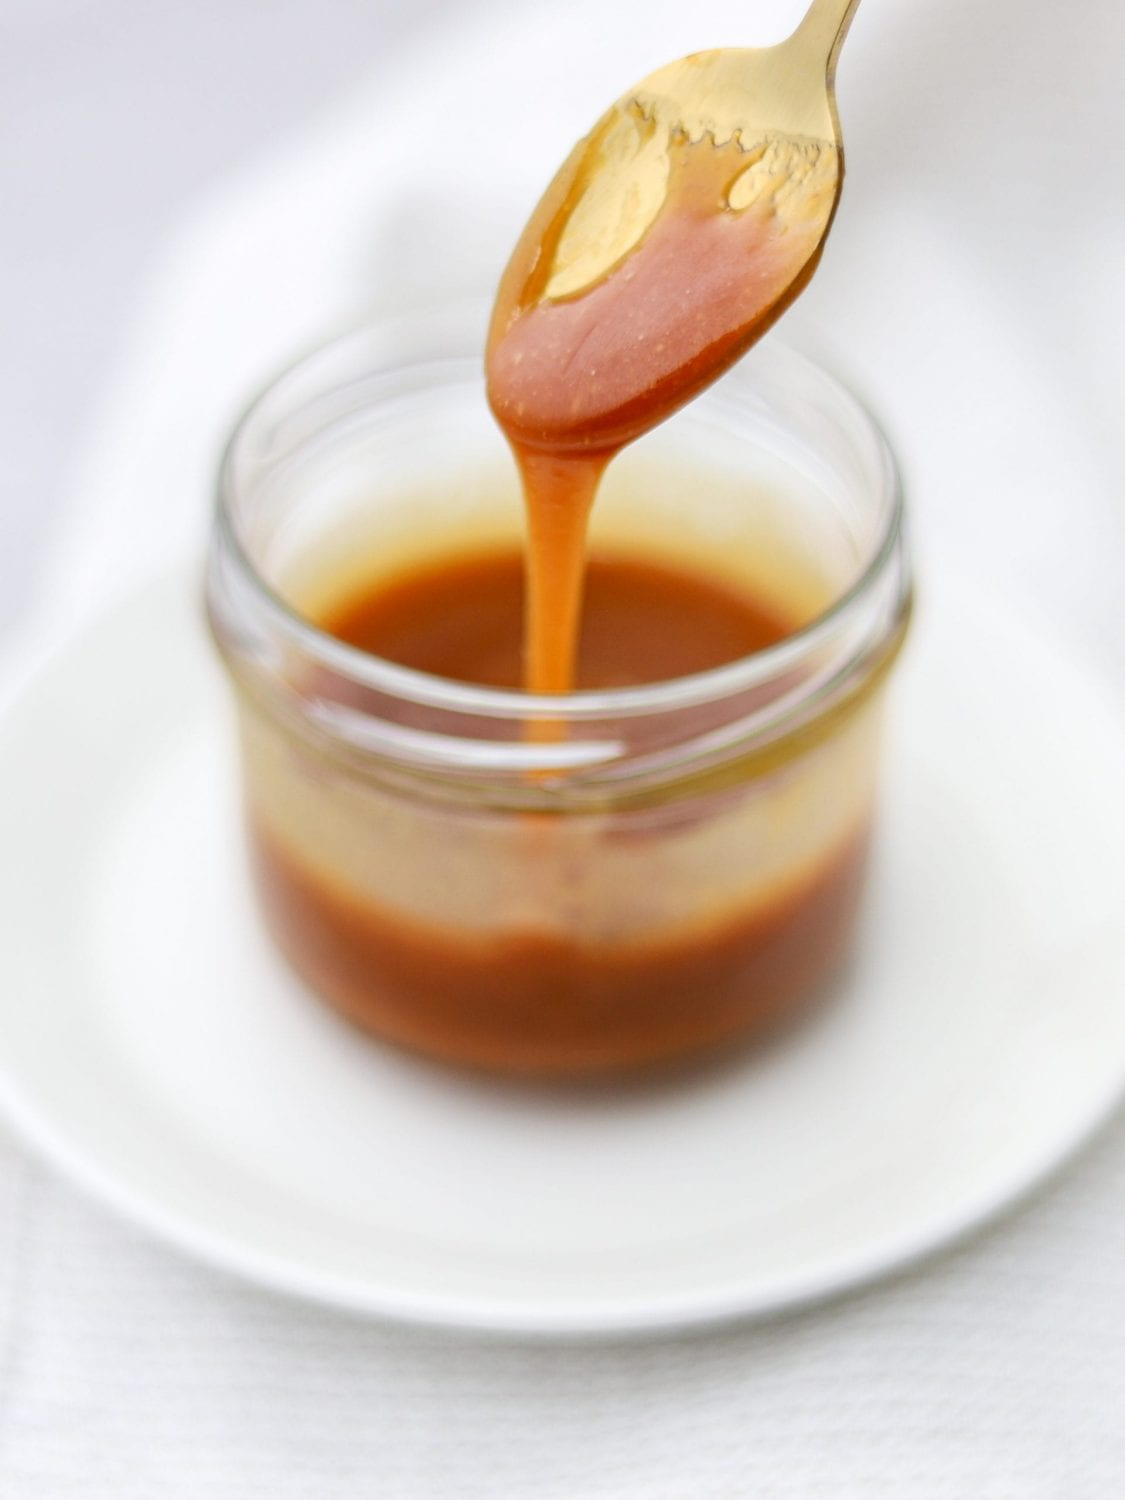 Cannabis infused caramel in a jar with a spoon scooping some of the caramel